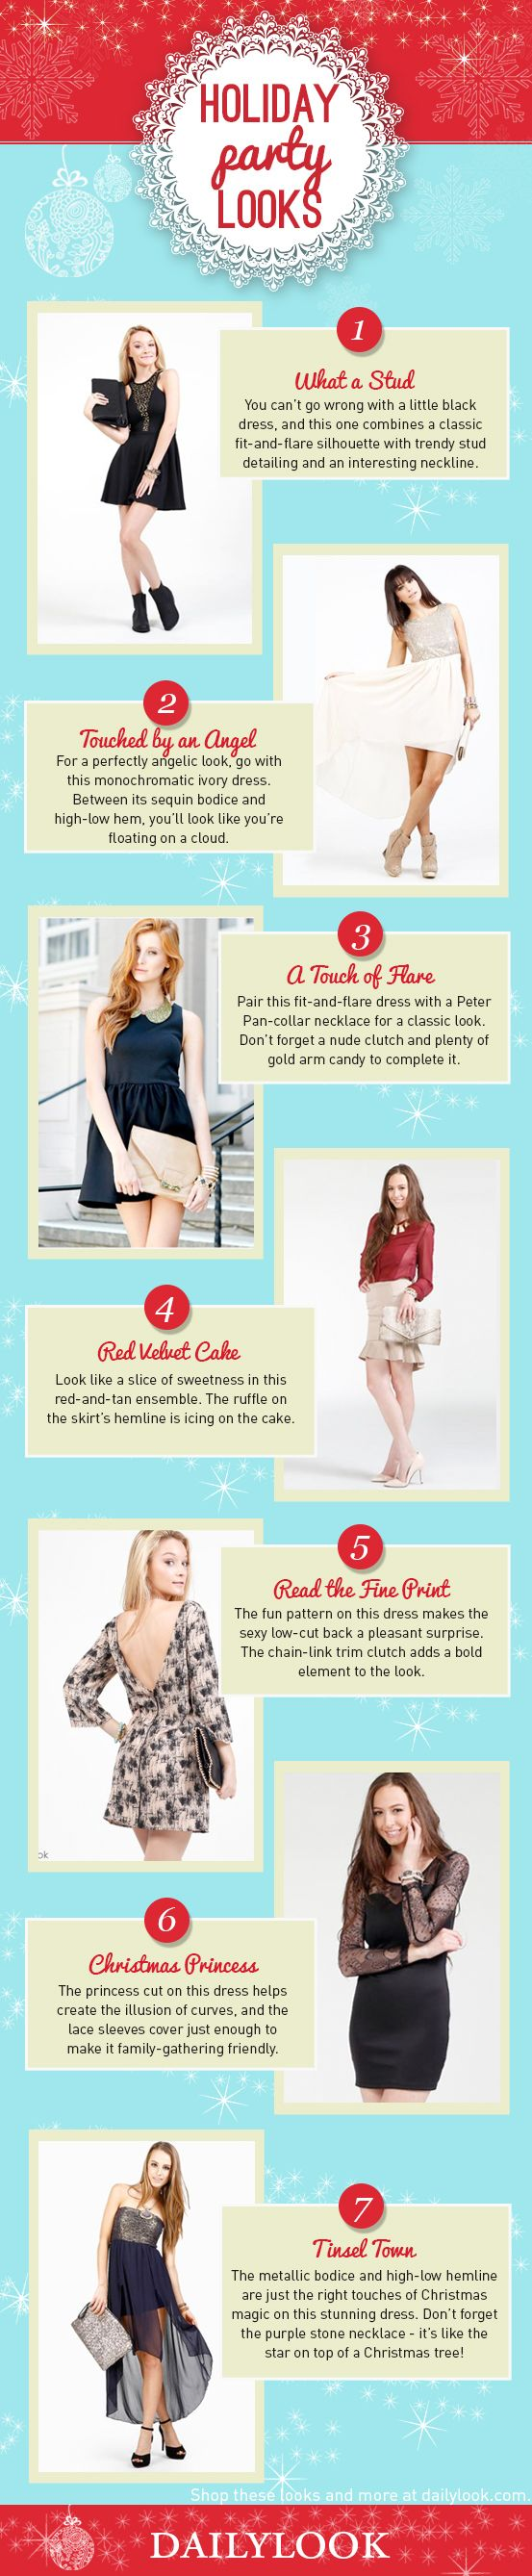 Holiday Party Looks: A DailyLook Style Guide. Click the image link to shop these looks! @dailylook #dailylook #dailylooksugarandspice